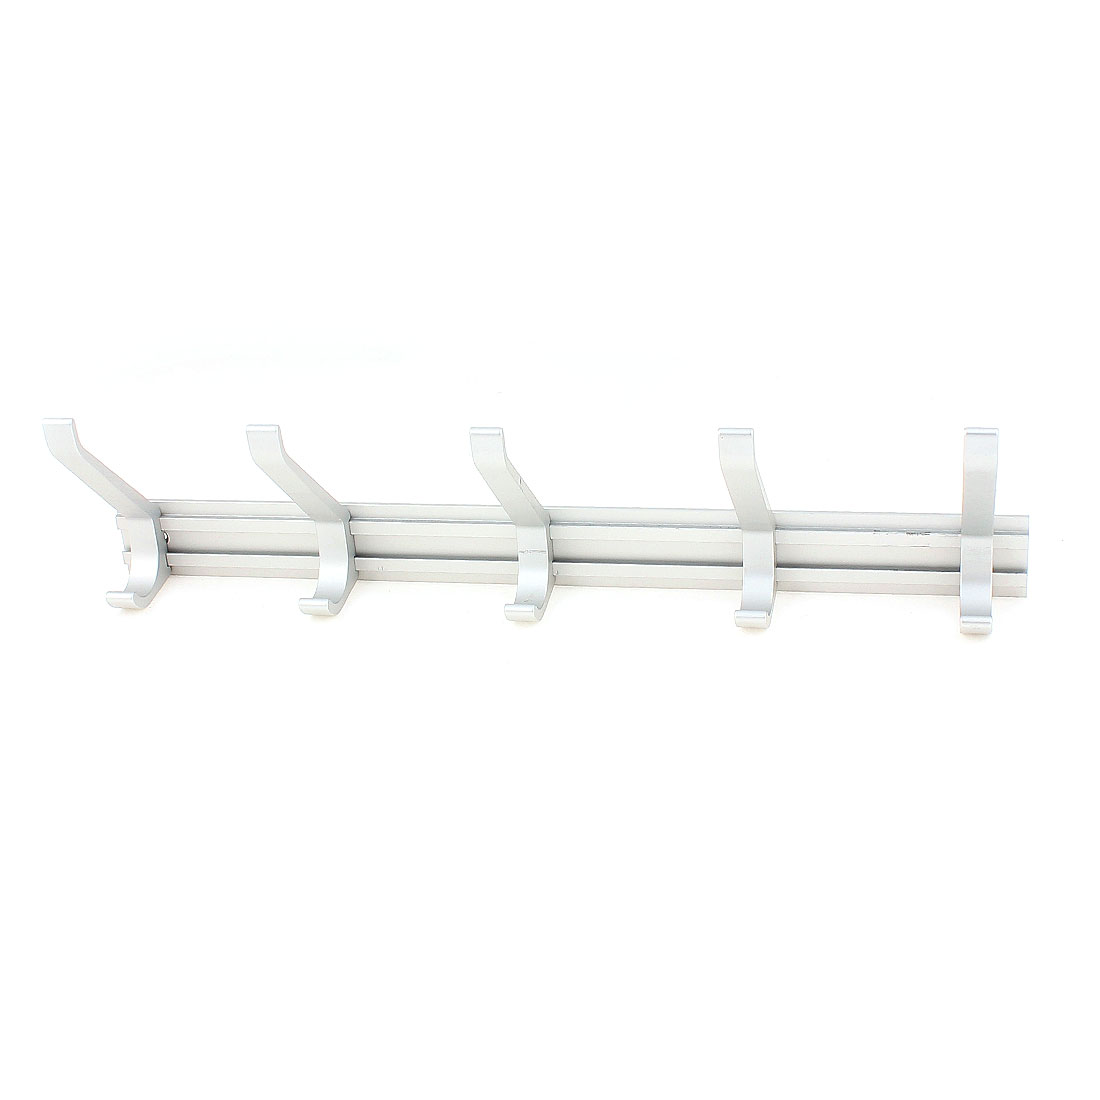 Bathroom Aluminum Wall Mount Towel Coat Hat Bag 5 Hooks Hanger Rack Silver Tone